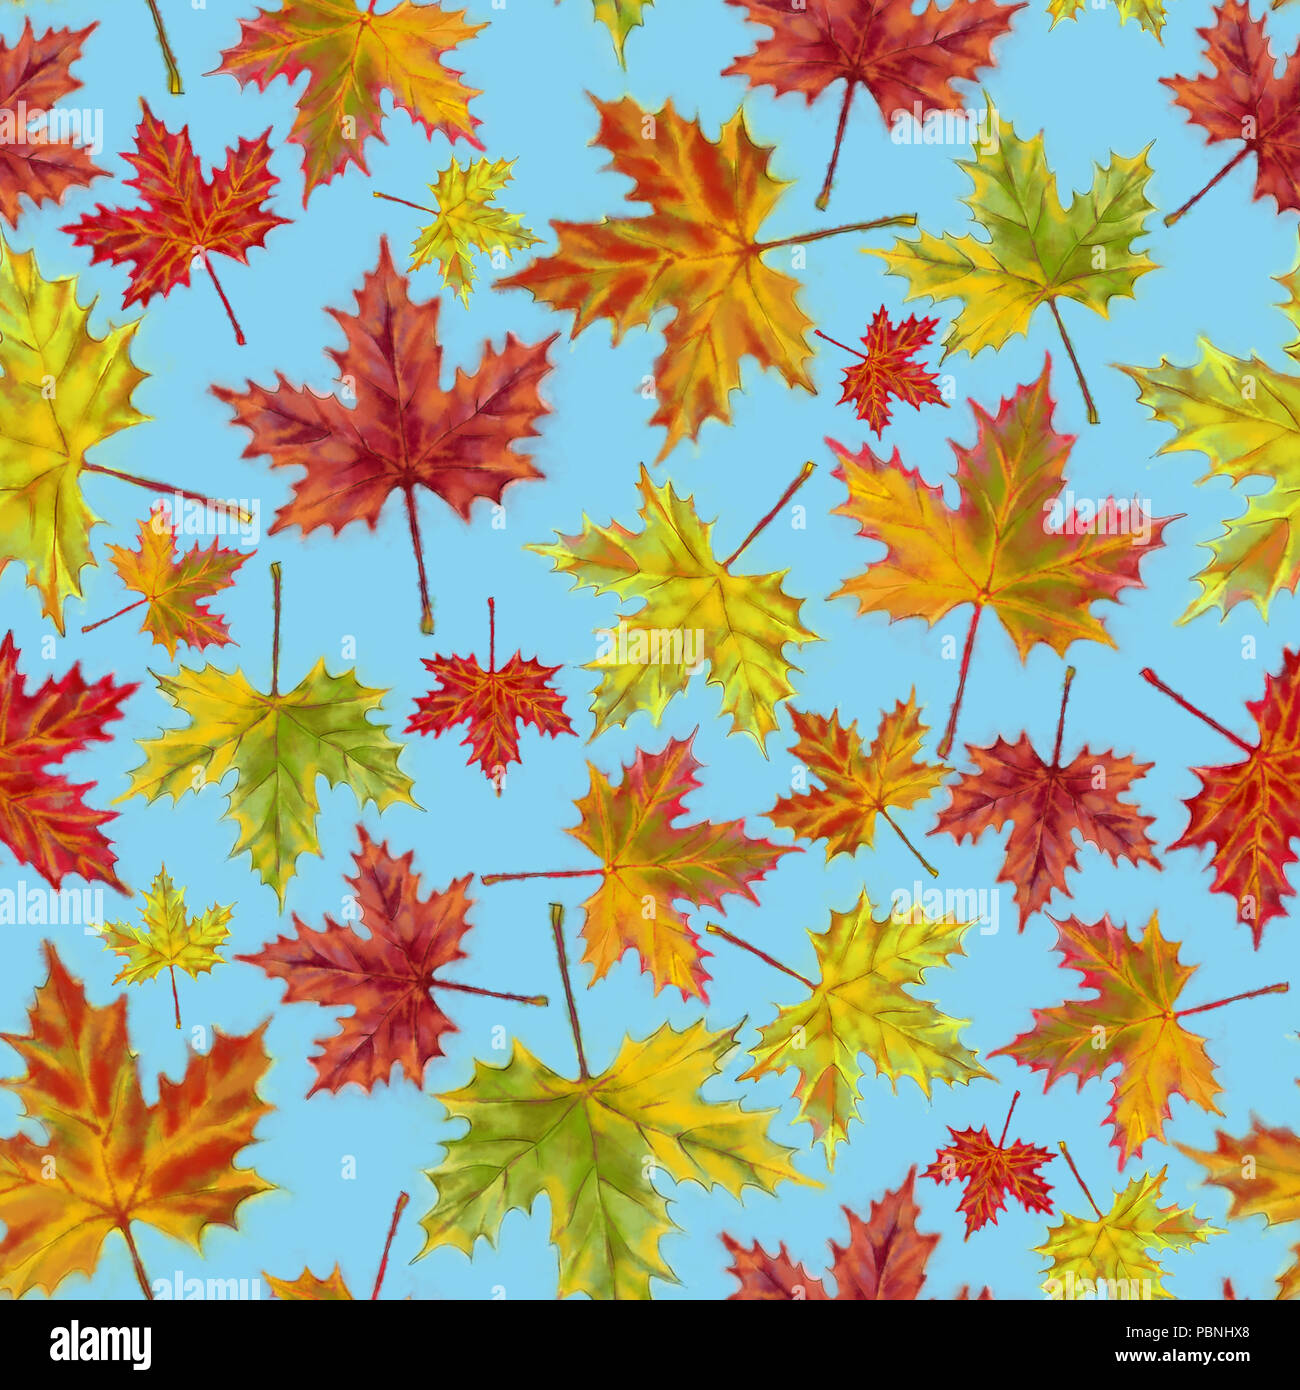 Autumn Maple Leaves Seamless Pattern on Blue Background. Autumnal ...